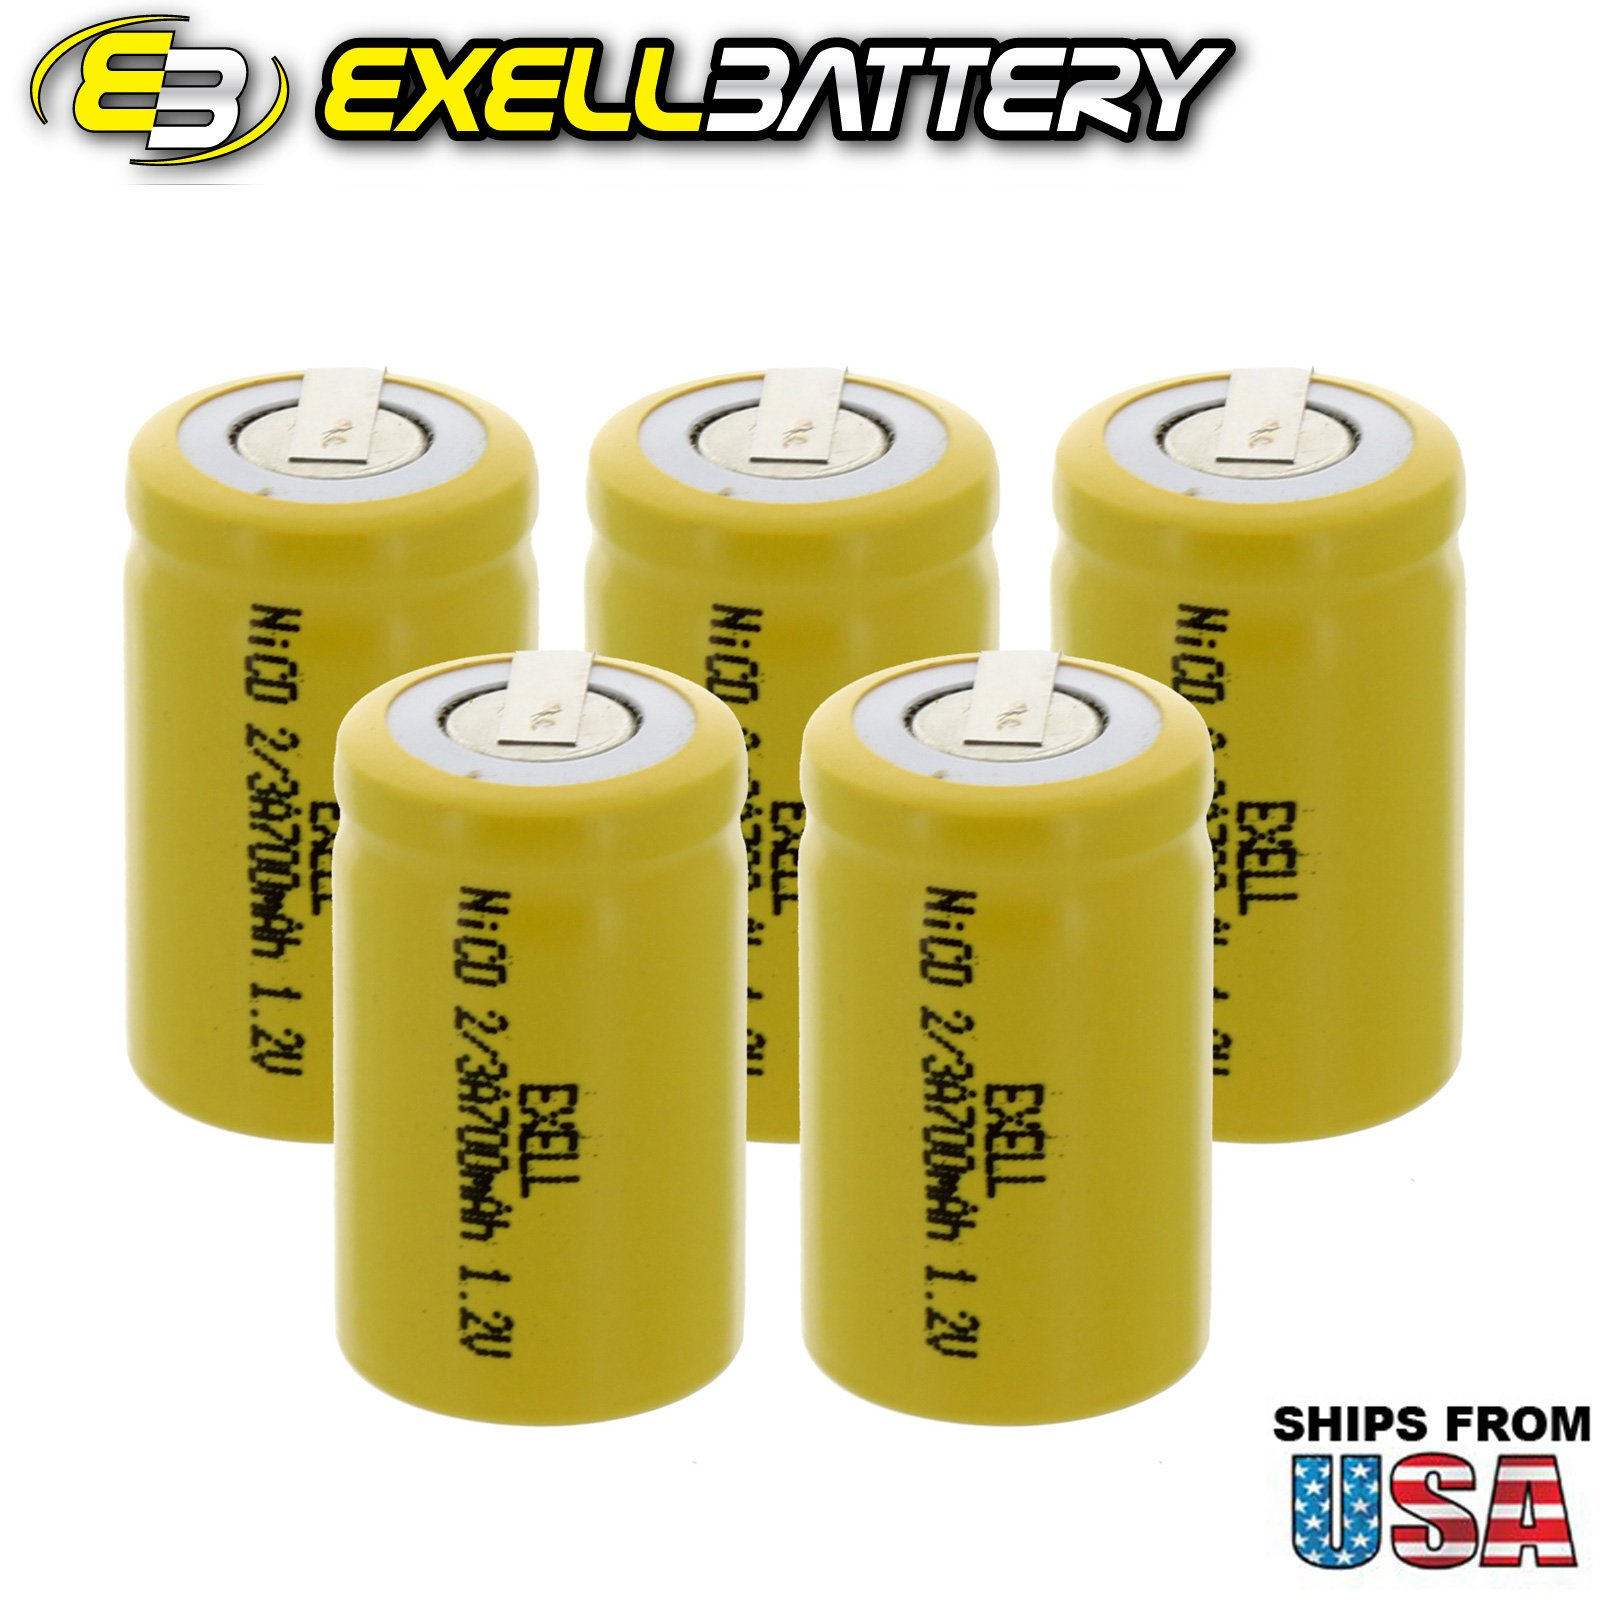 5x Exell 2/3A Size 1.2V 700mAh NiCD Rechargeable Batteries with Tabs for medical instruments/equipment, electric razors, toothbrushes, radio controlled devices, electric tools